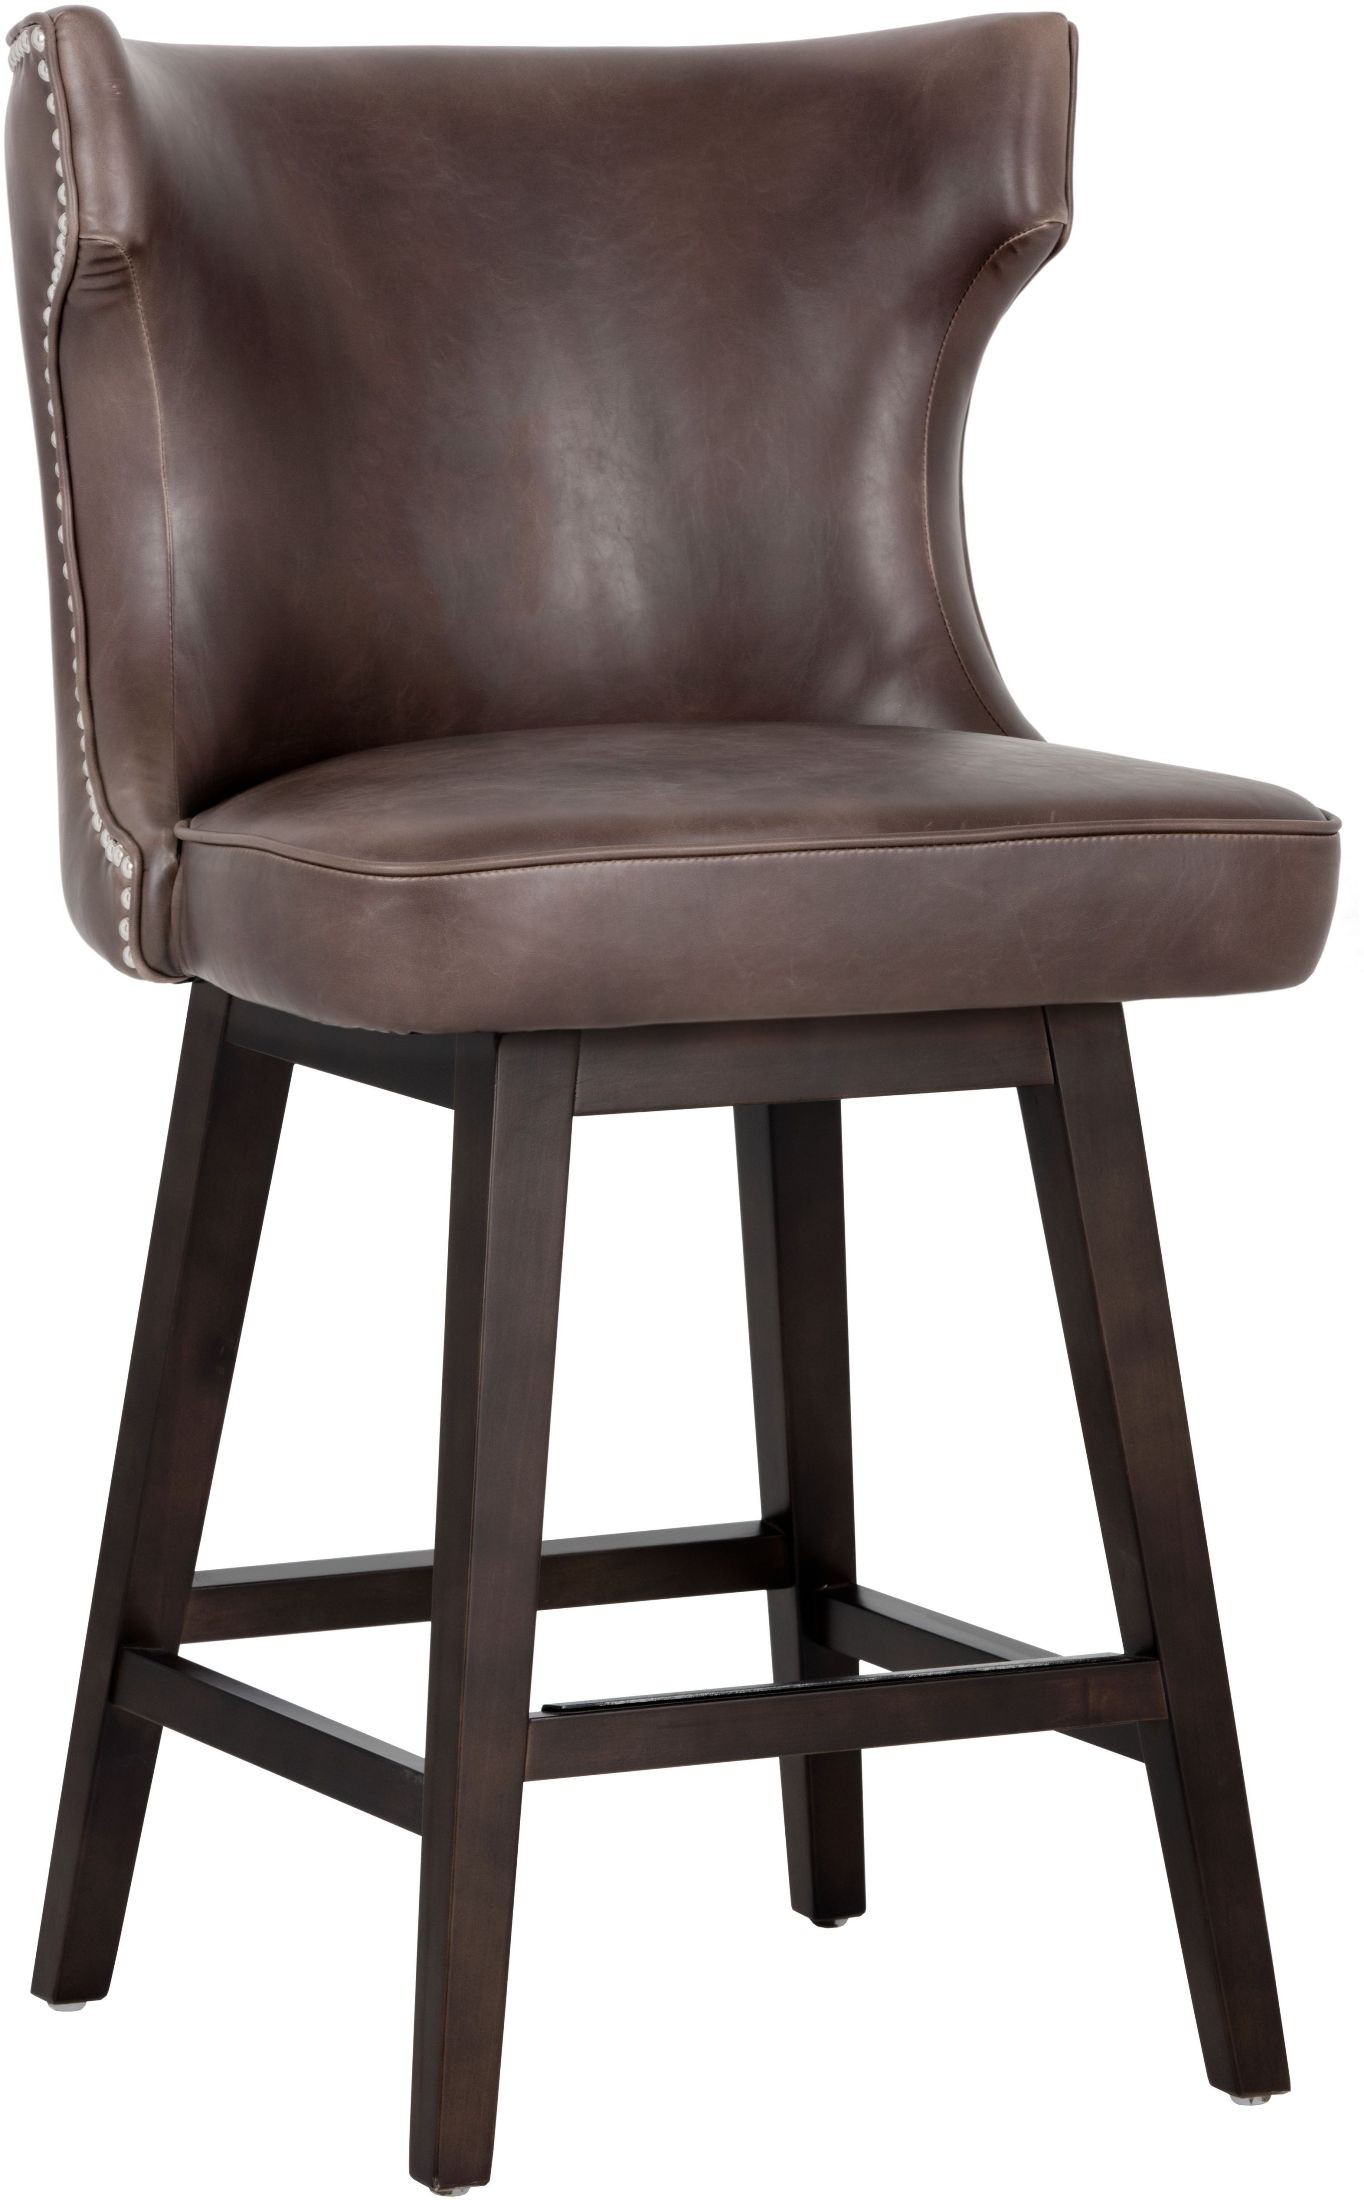 Neville Havana Dark Brown Swivel Counter Stool 101946